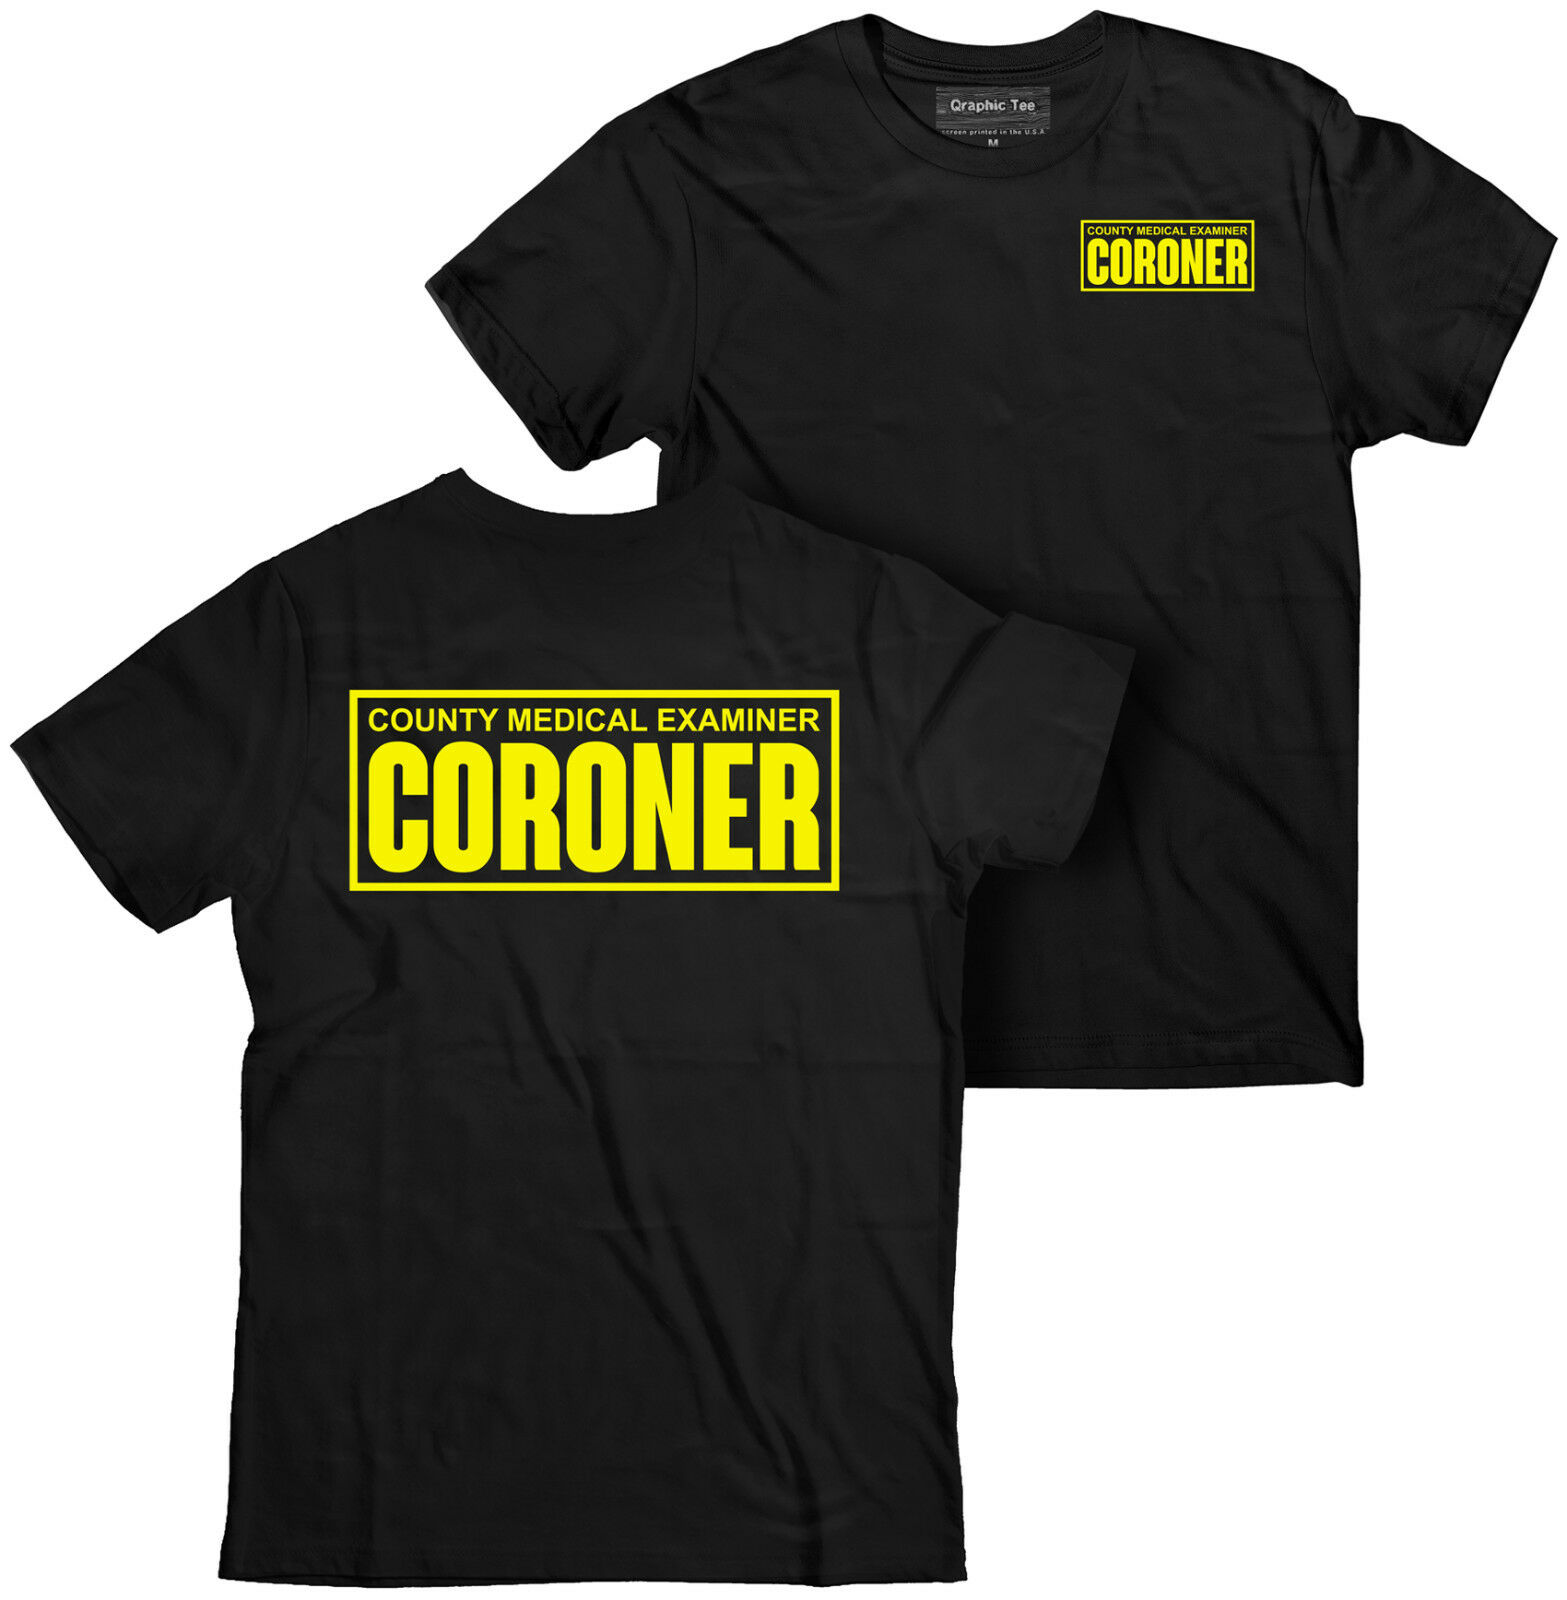 2019 Fashion Double Side Coroner T-Shirt, Coroner Shirt, Csi T-Shirt, Medical Examiner Shirt, Crime Scene Unisex Tee